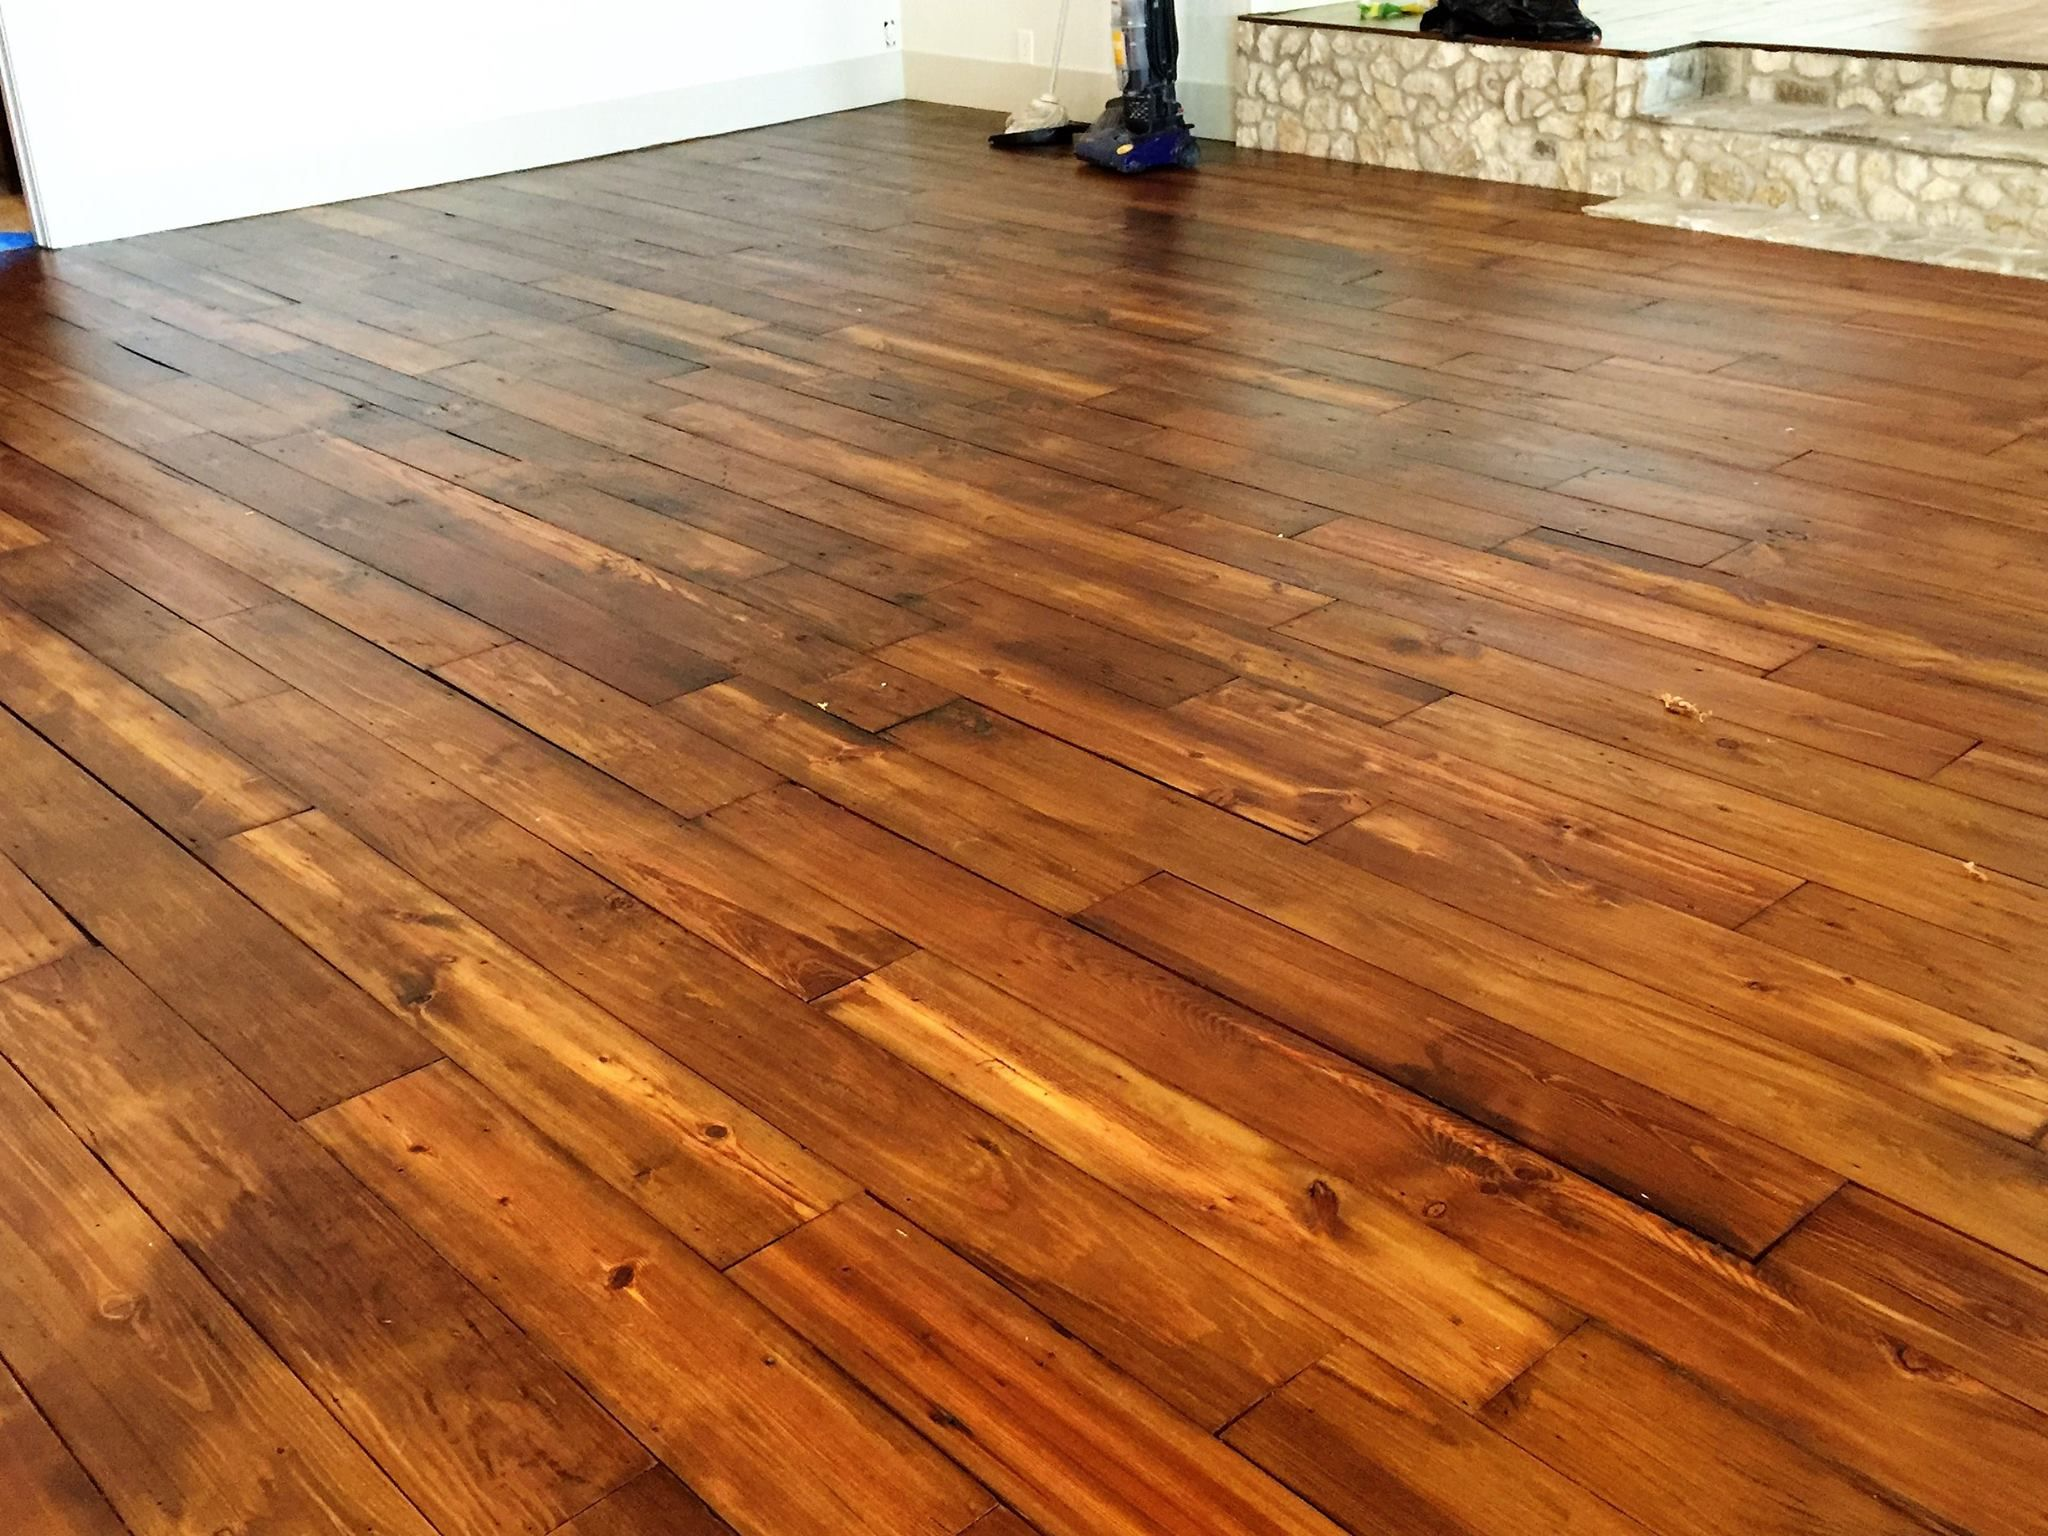 Reclaimed Wood Flooring Created With Our Own Antique Lumber Antique Lumber Company Arte Em Madeira Decoracao Madeira